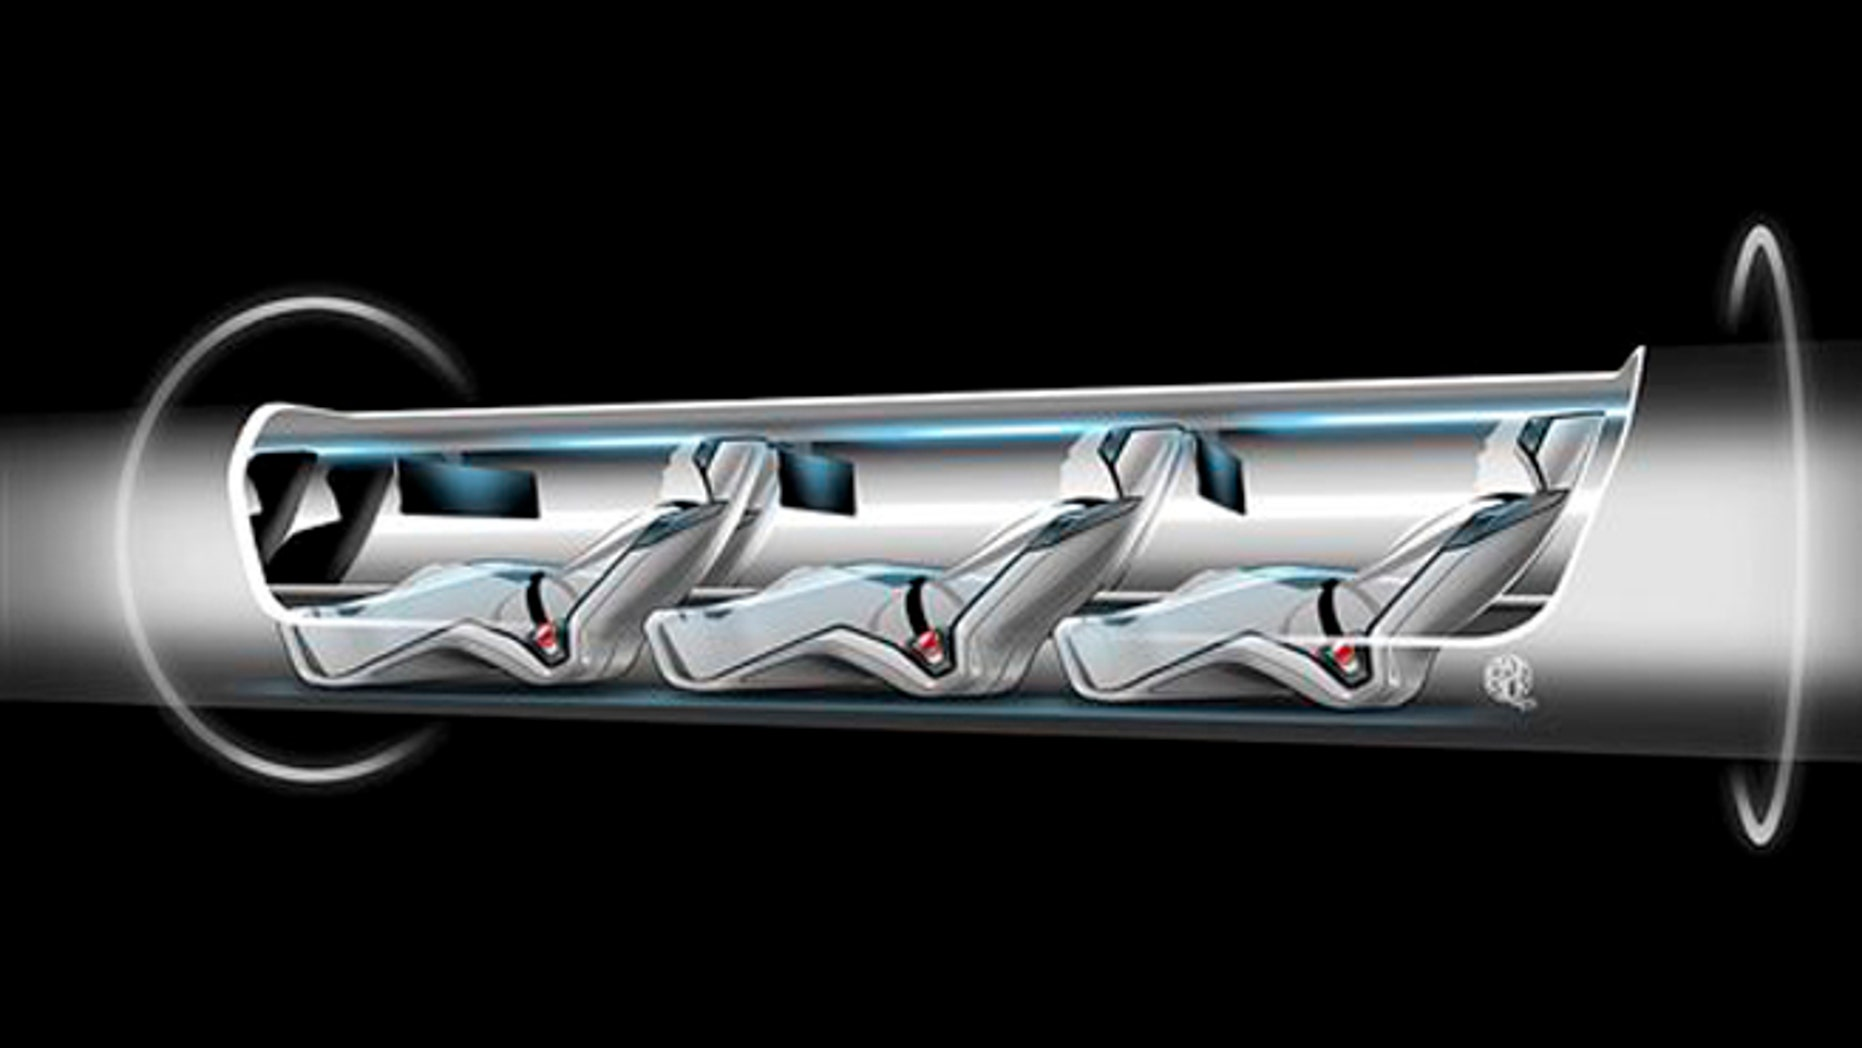 This file image released by Tesla Motors shows a sketch of the Hyperloop capsule with passengers onboard. When billionaire entrepreneur Elon Musk published fanciful plans to shoot capsules full of people at the speed of sound through a tube connecting Los Angeles and San Francisco, he asked the public to perfect his rough plans. From tinkerers to engineers, the race is on.